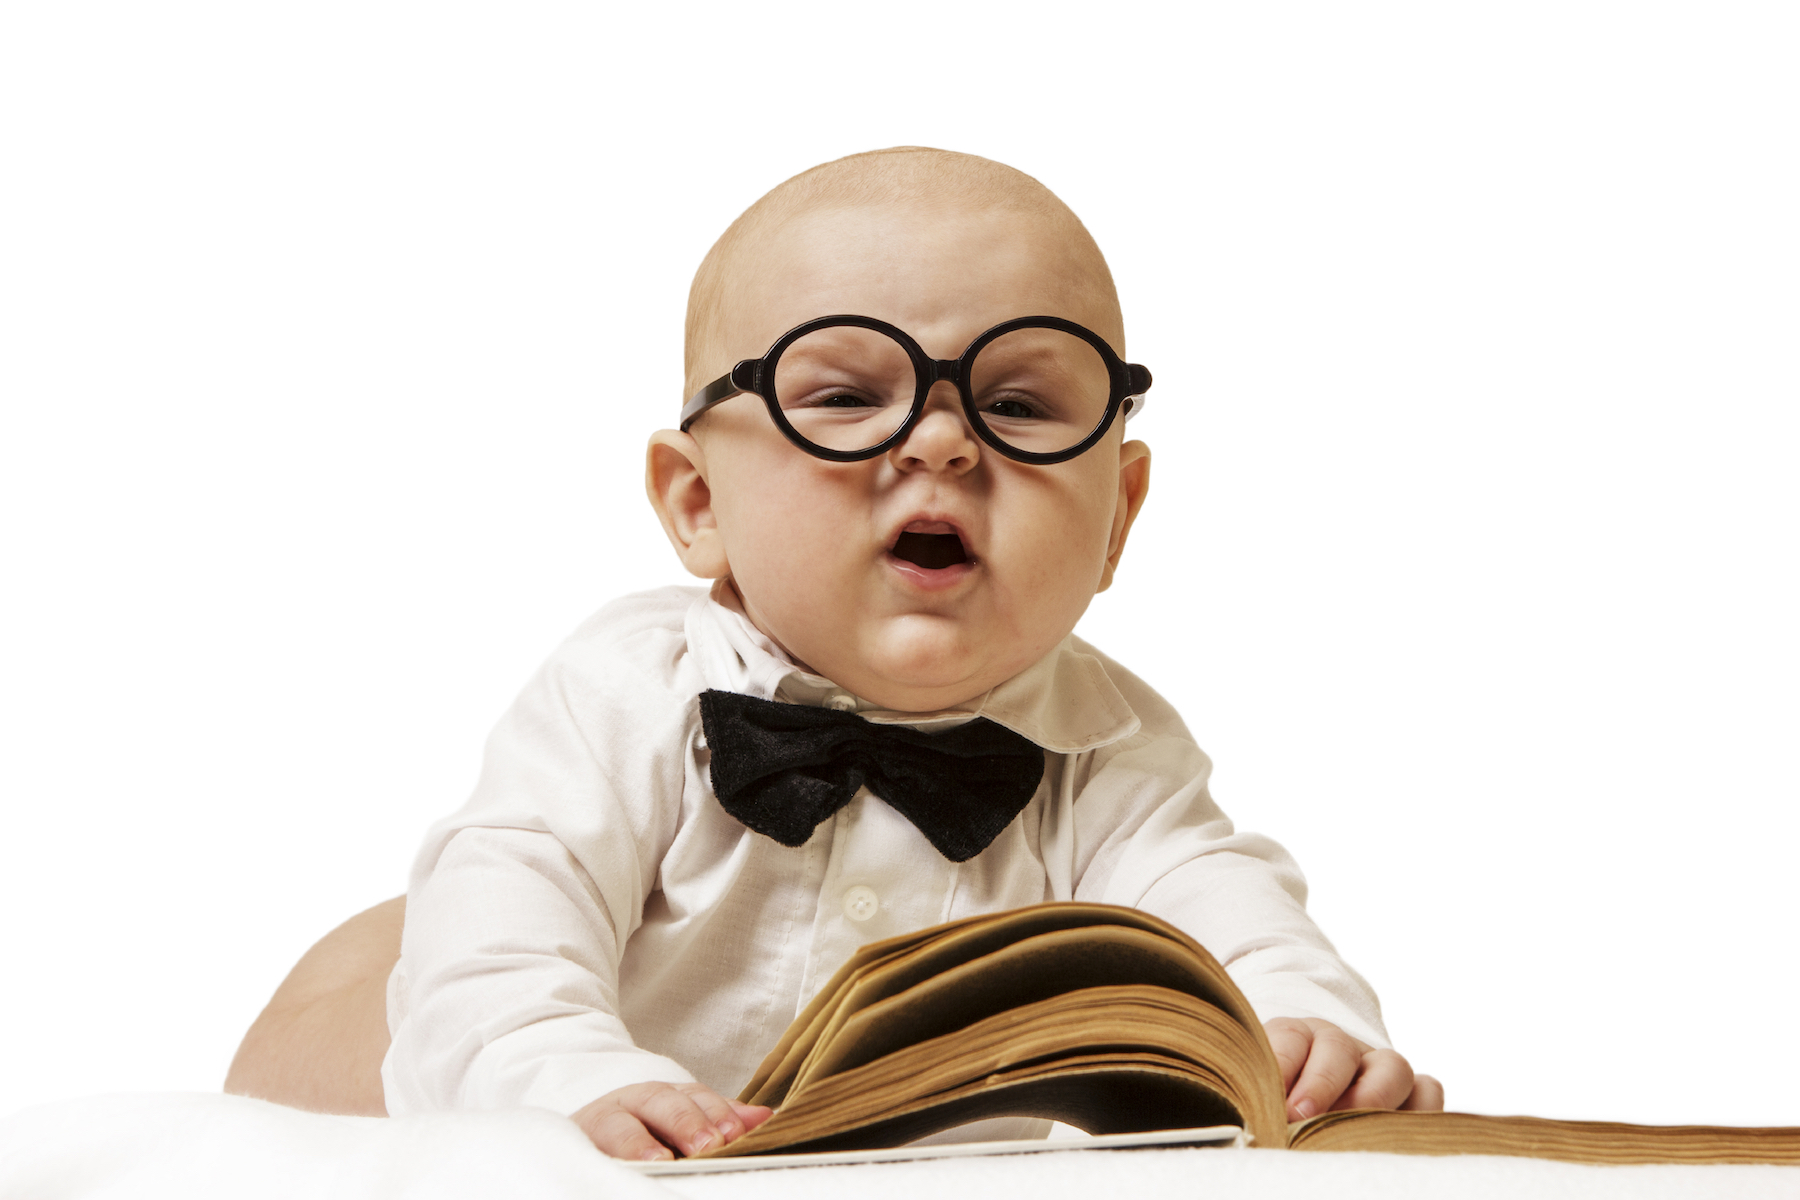 A baby wearing studious glasses and a bow tie while reading a big book